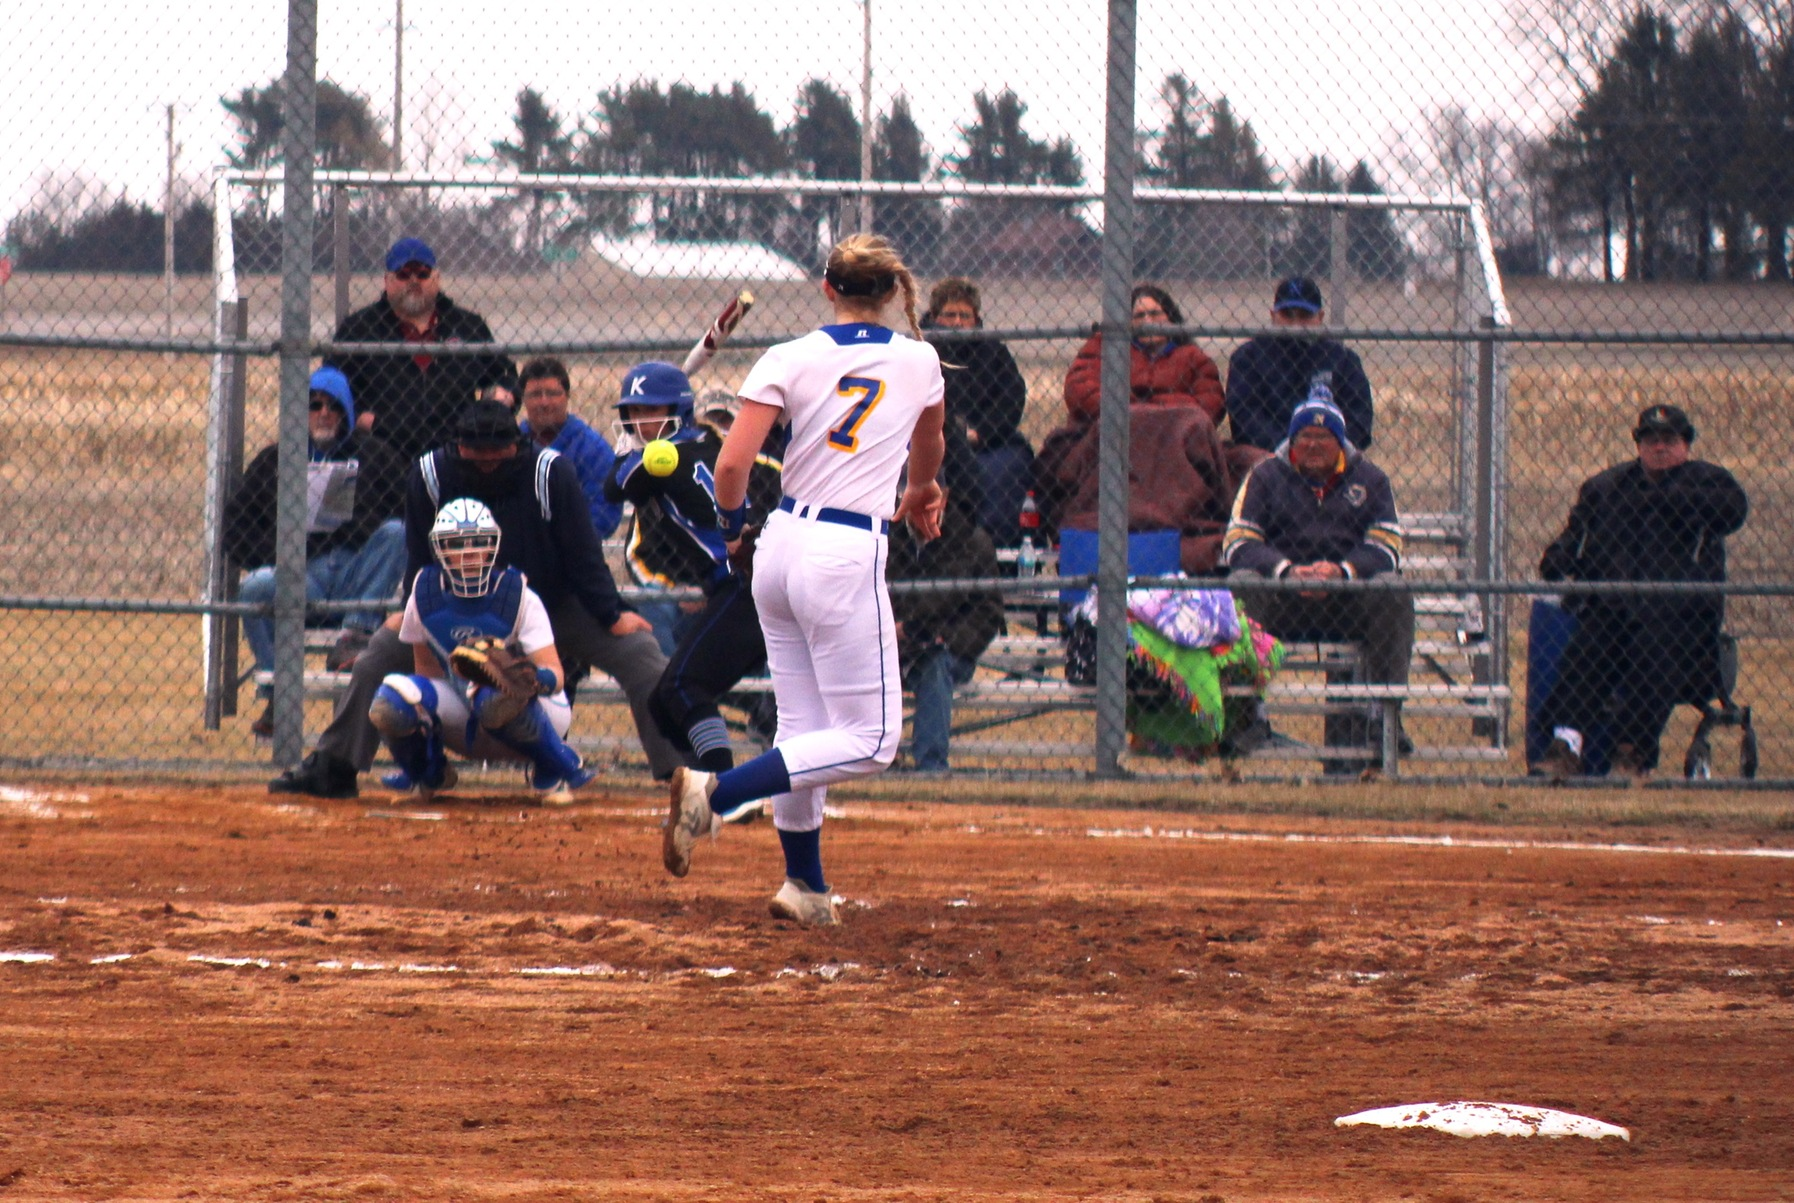 NIACC's Kristen Peka delivers a pitch in Wednesday's doubleheader against Kirkwood. Photo by NIACC's Leo Driscoll.